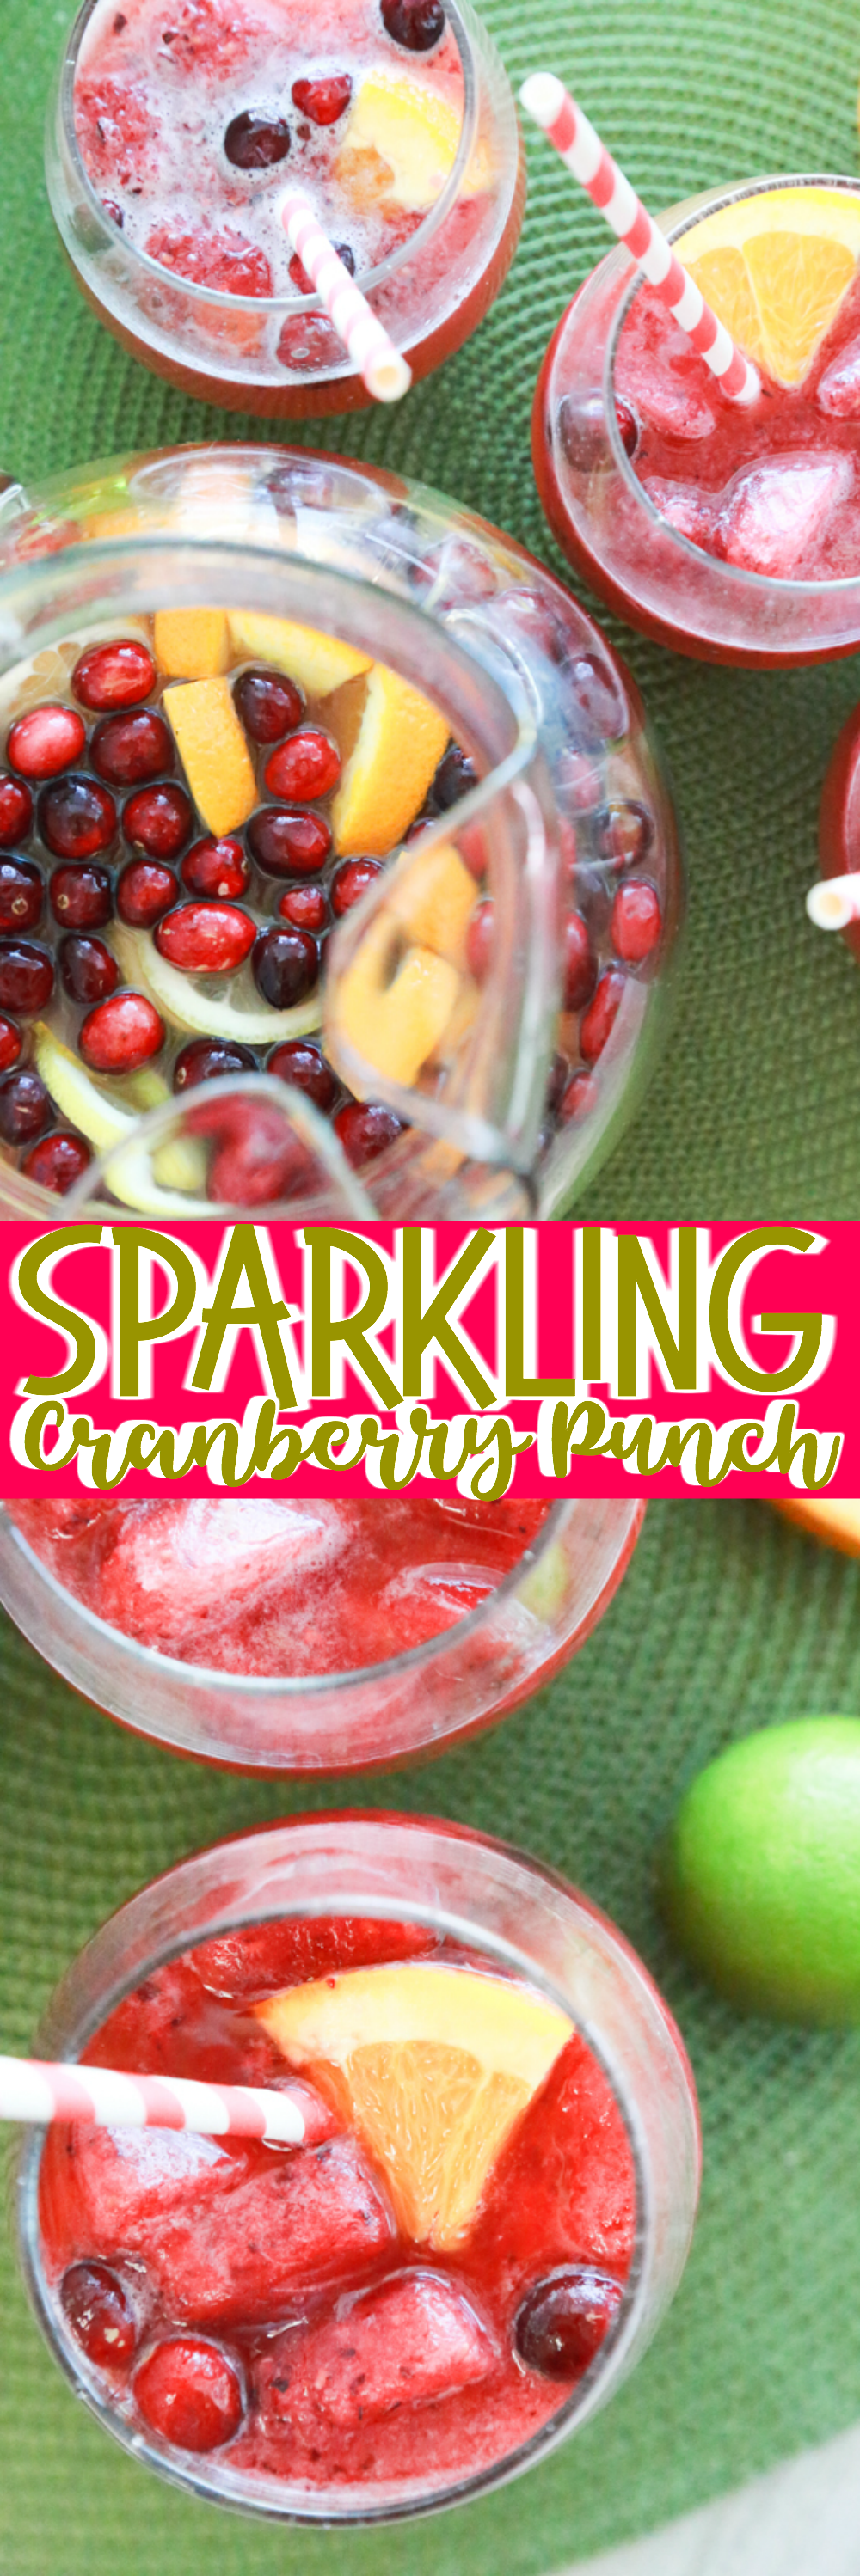 This Sparkling Cranberry Punch is a drink the entire crowd can enjoy for the holidays.